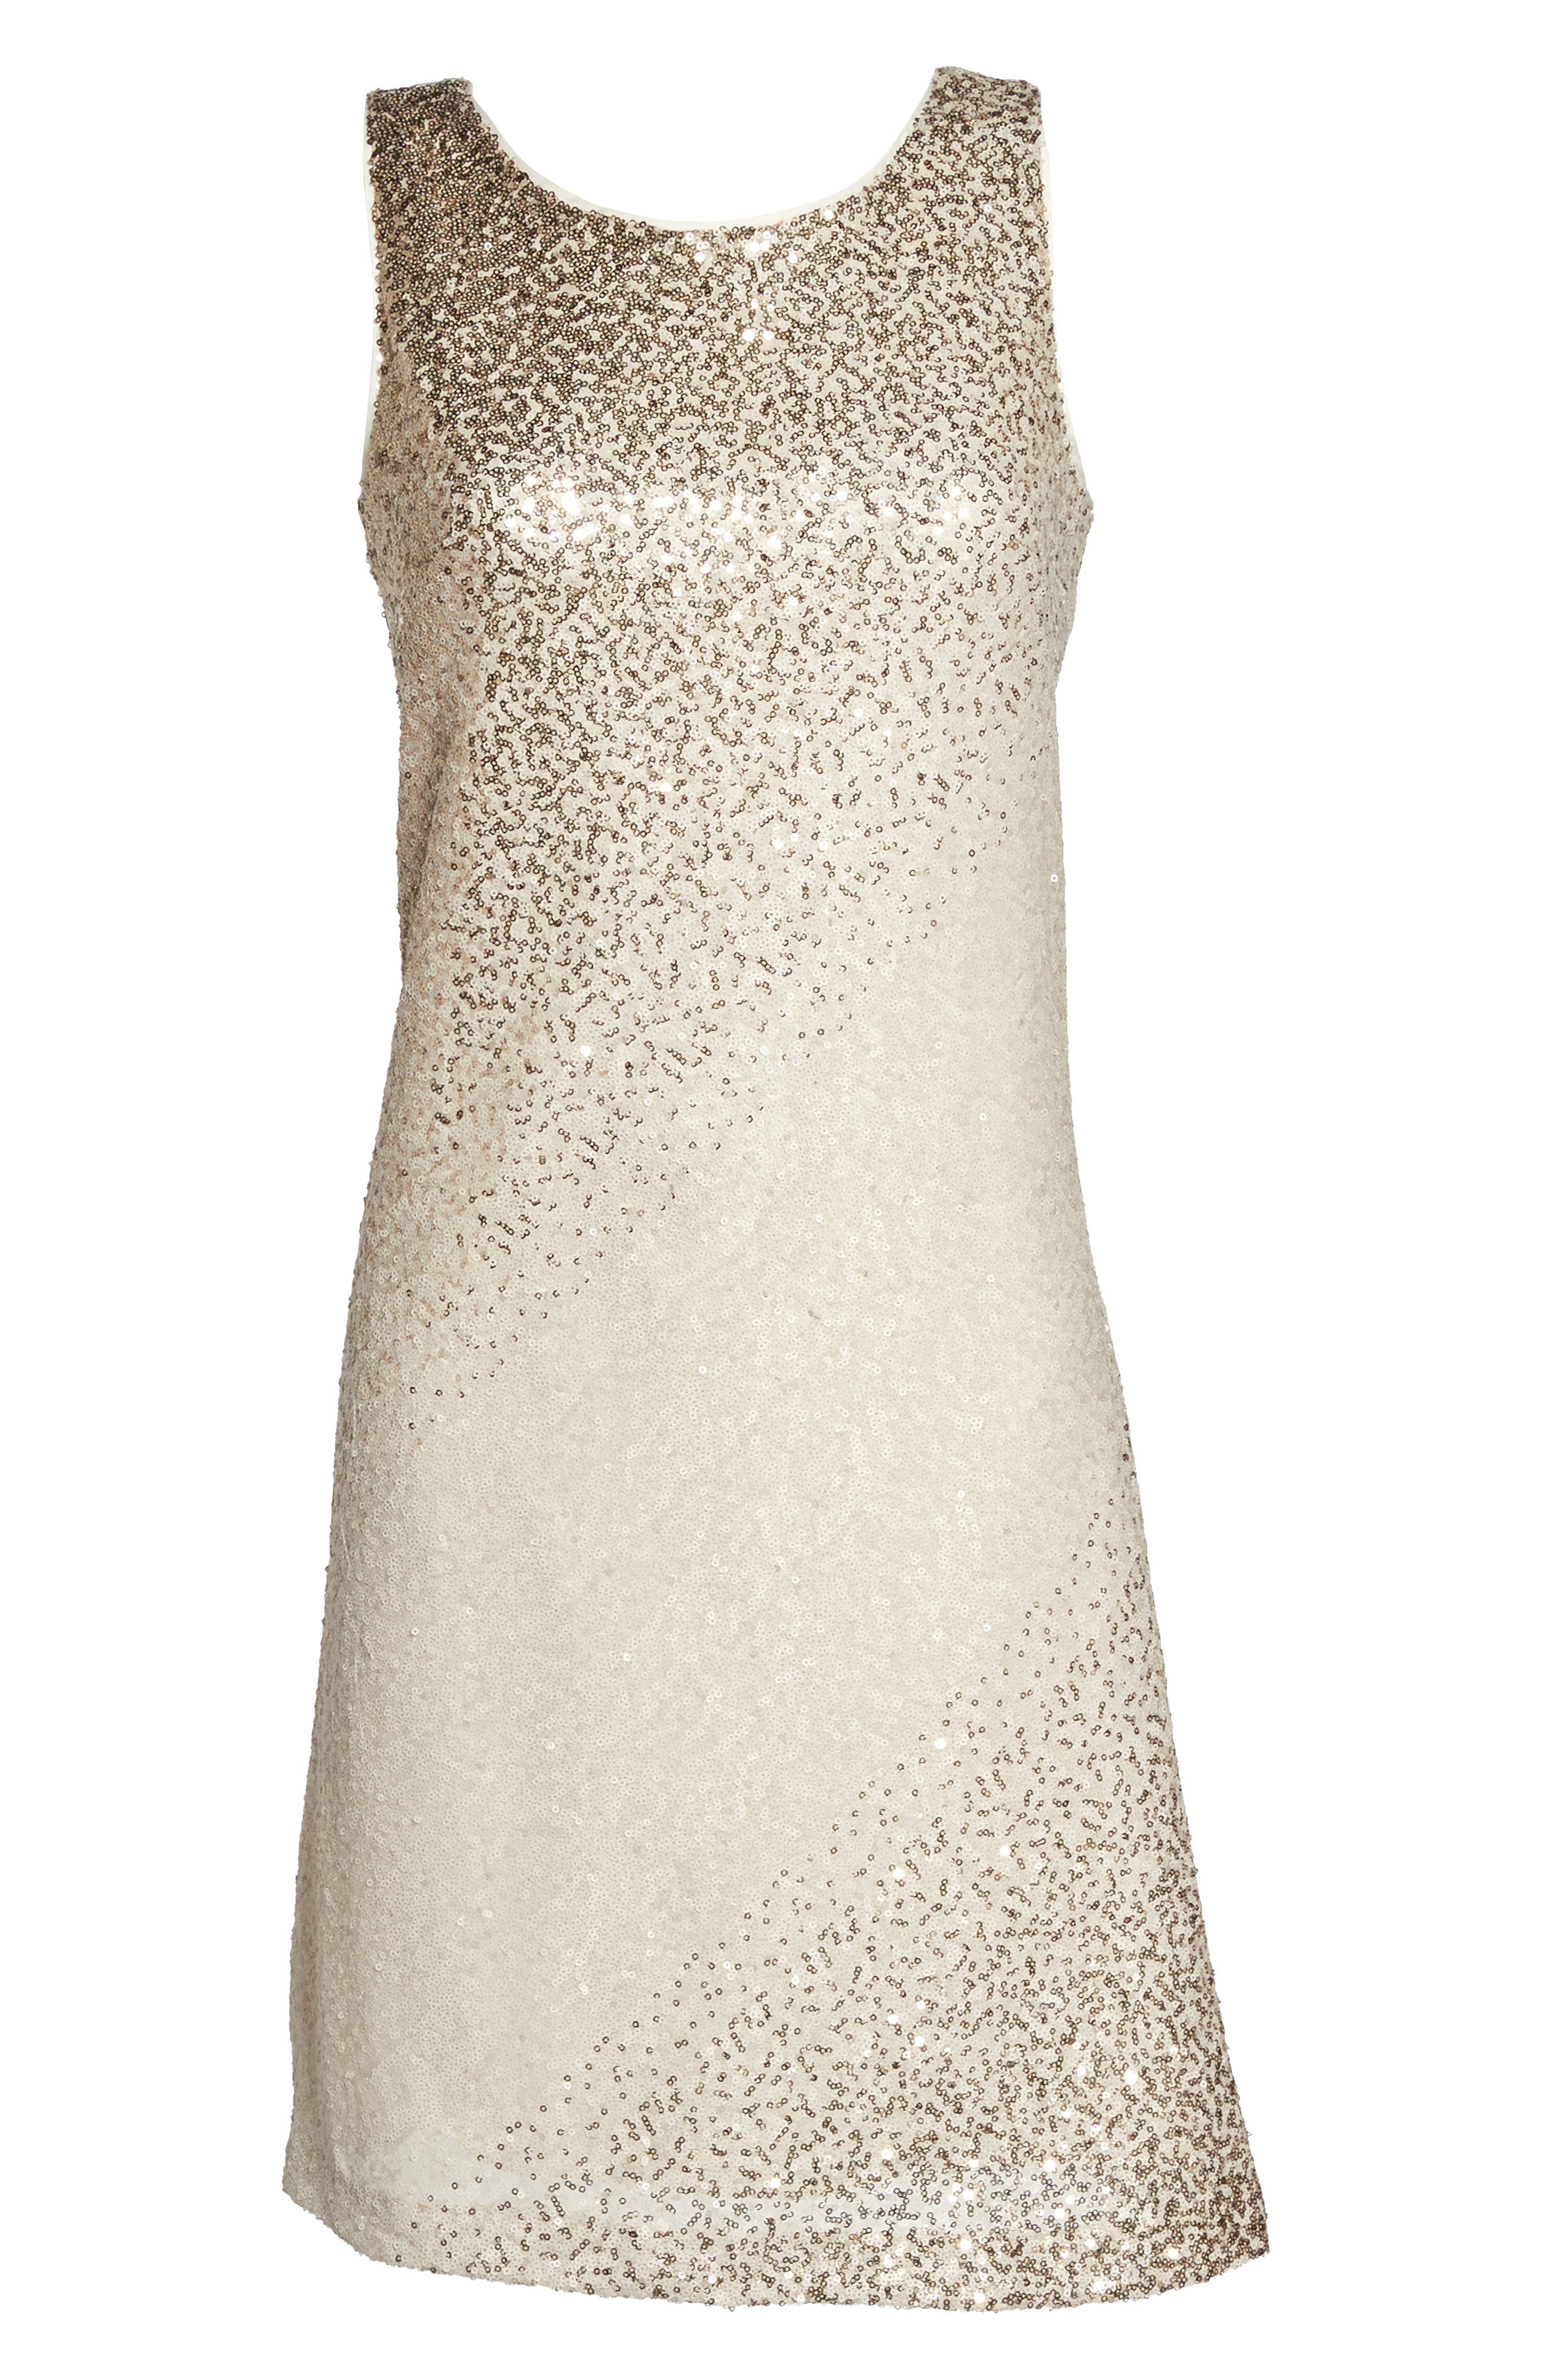 Sequin Shift Dress,                             Alternate thumbnail 6, color,                             Ivory/ Gold